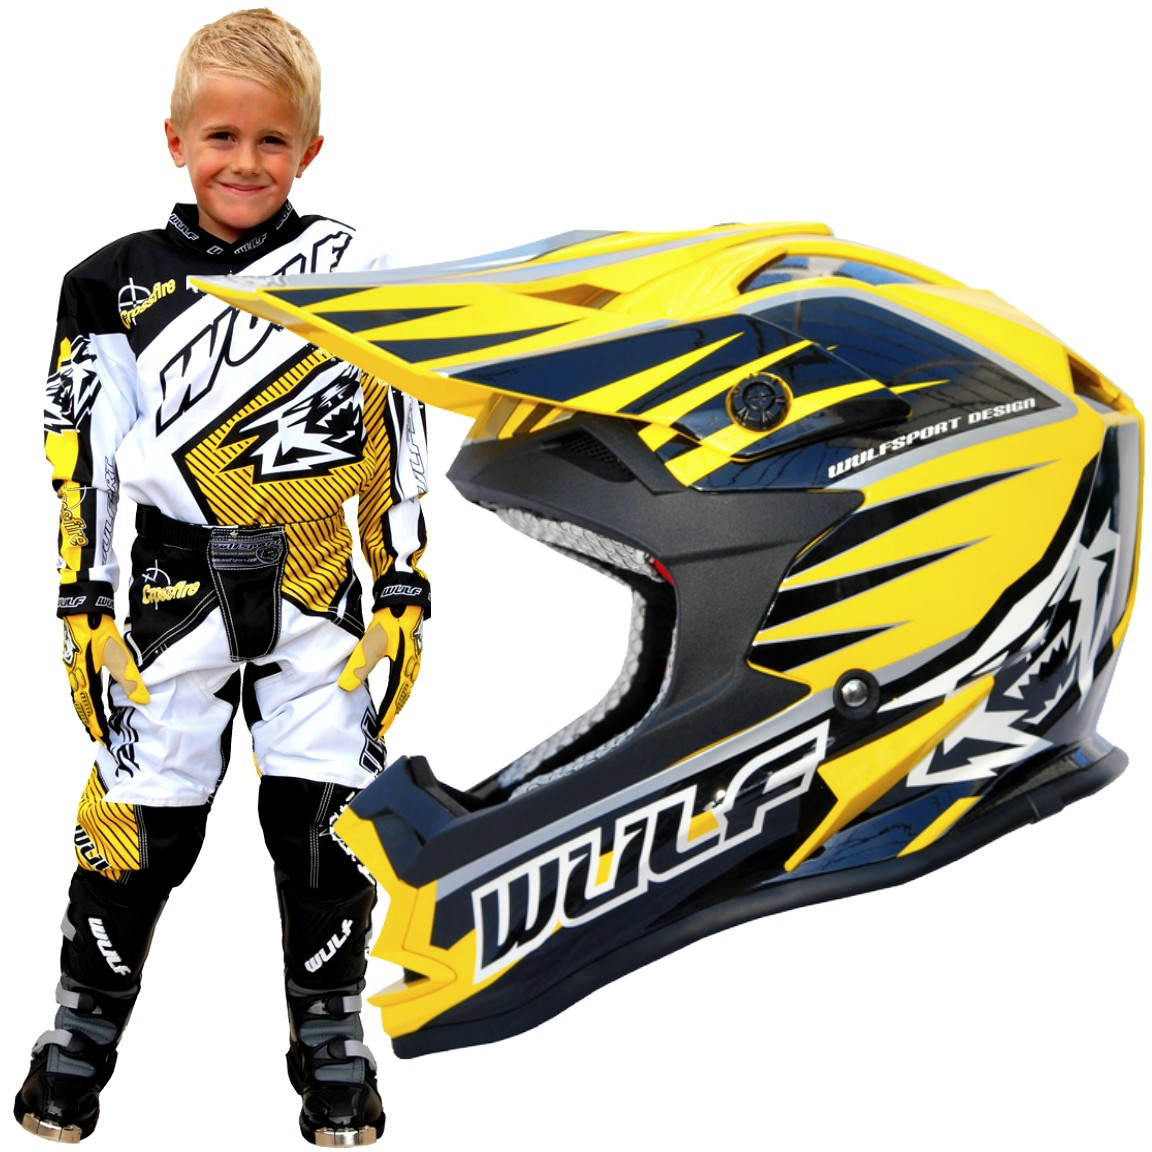 CASQUE ENFANT MOTO CROSS WULFSPORT ADVANCE JAUNE YS a YXL